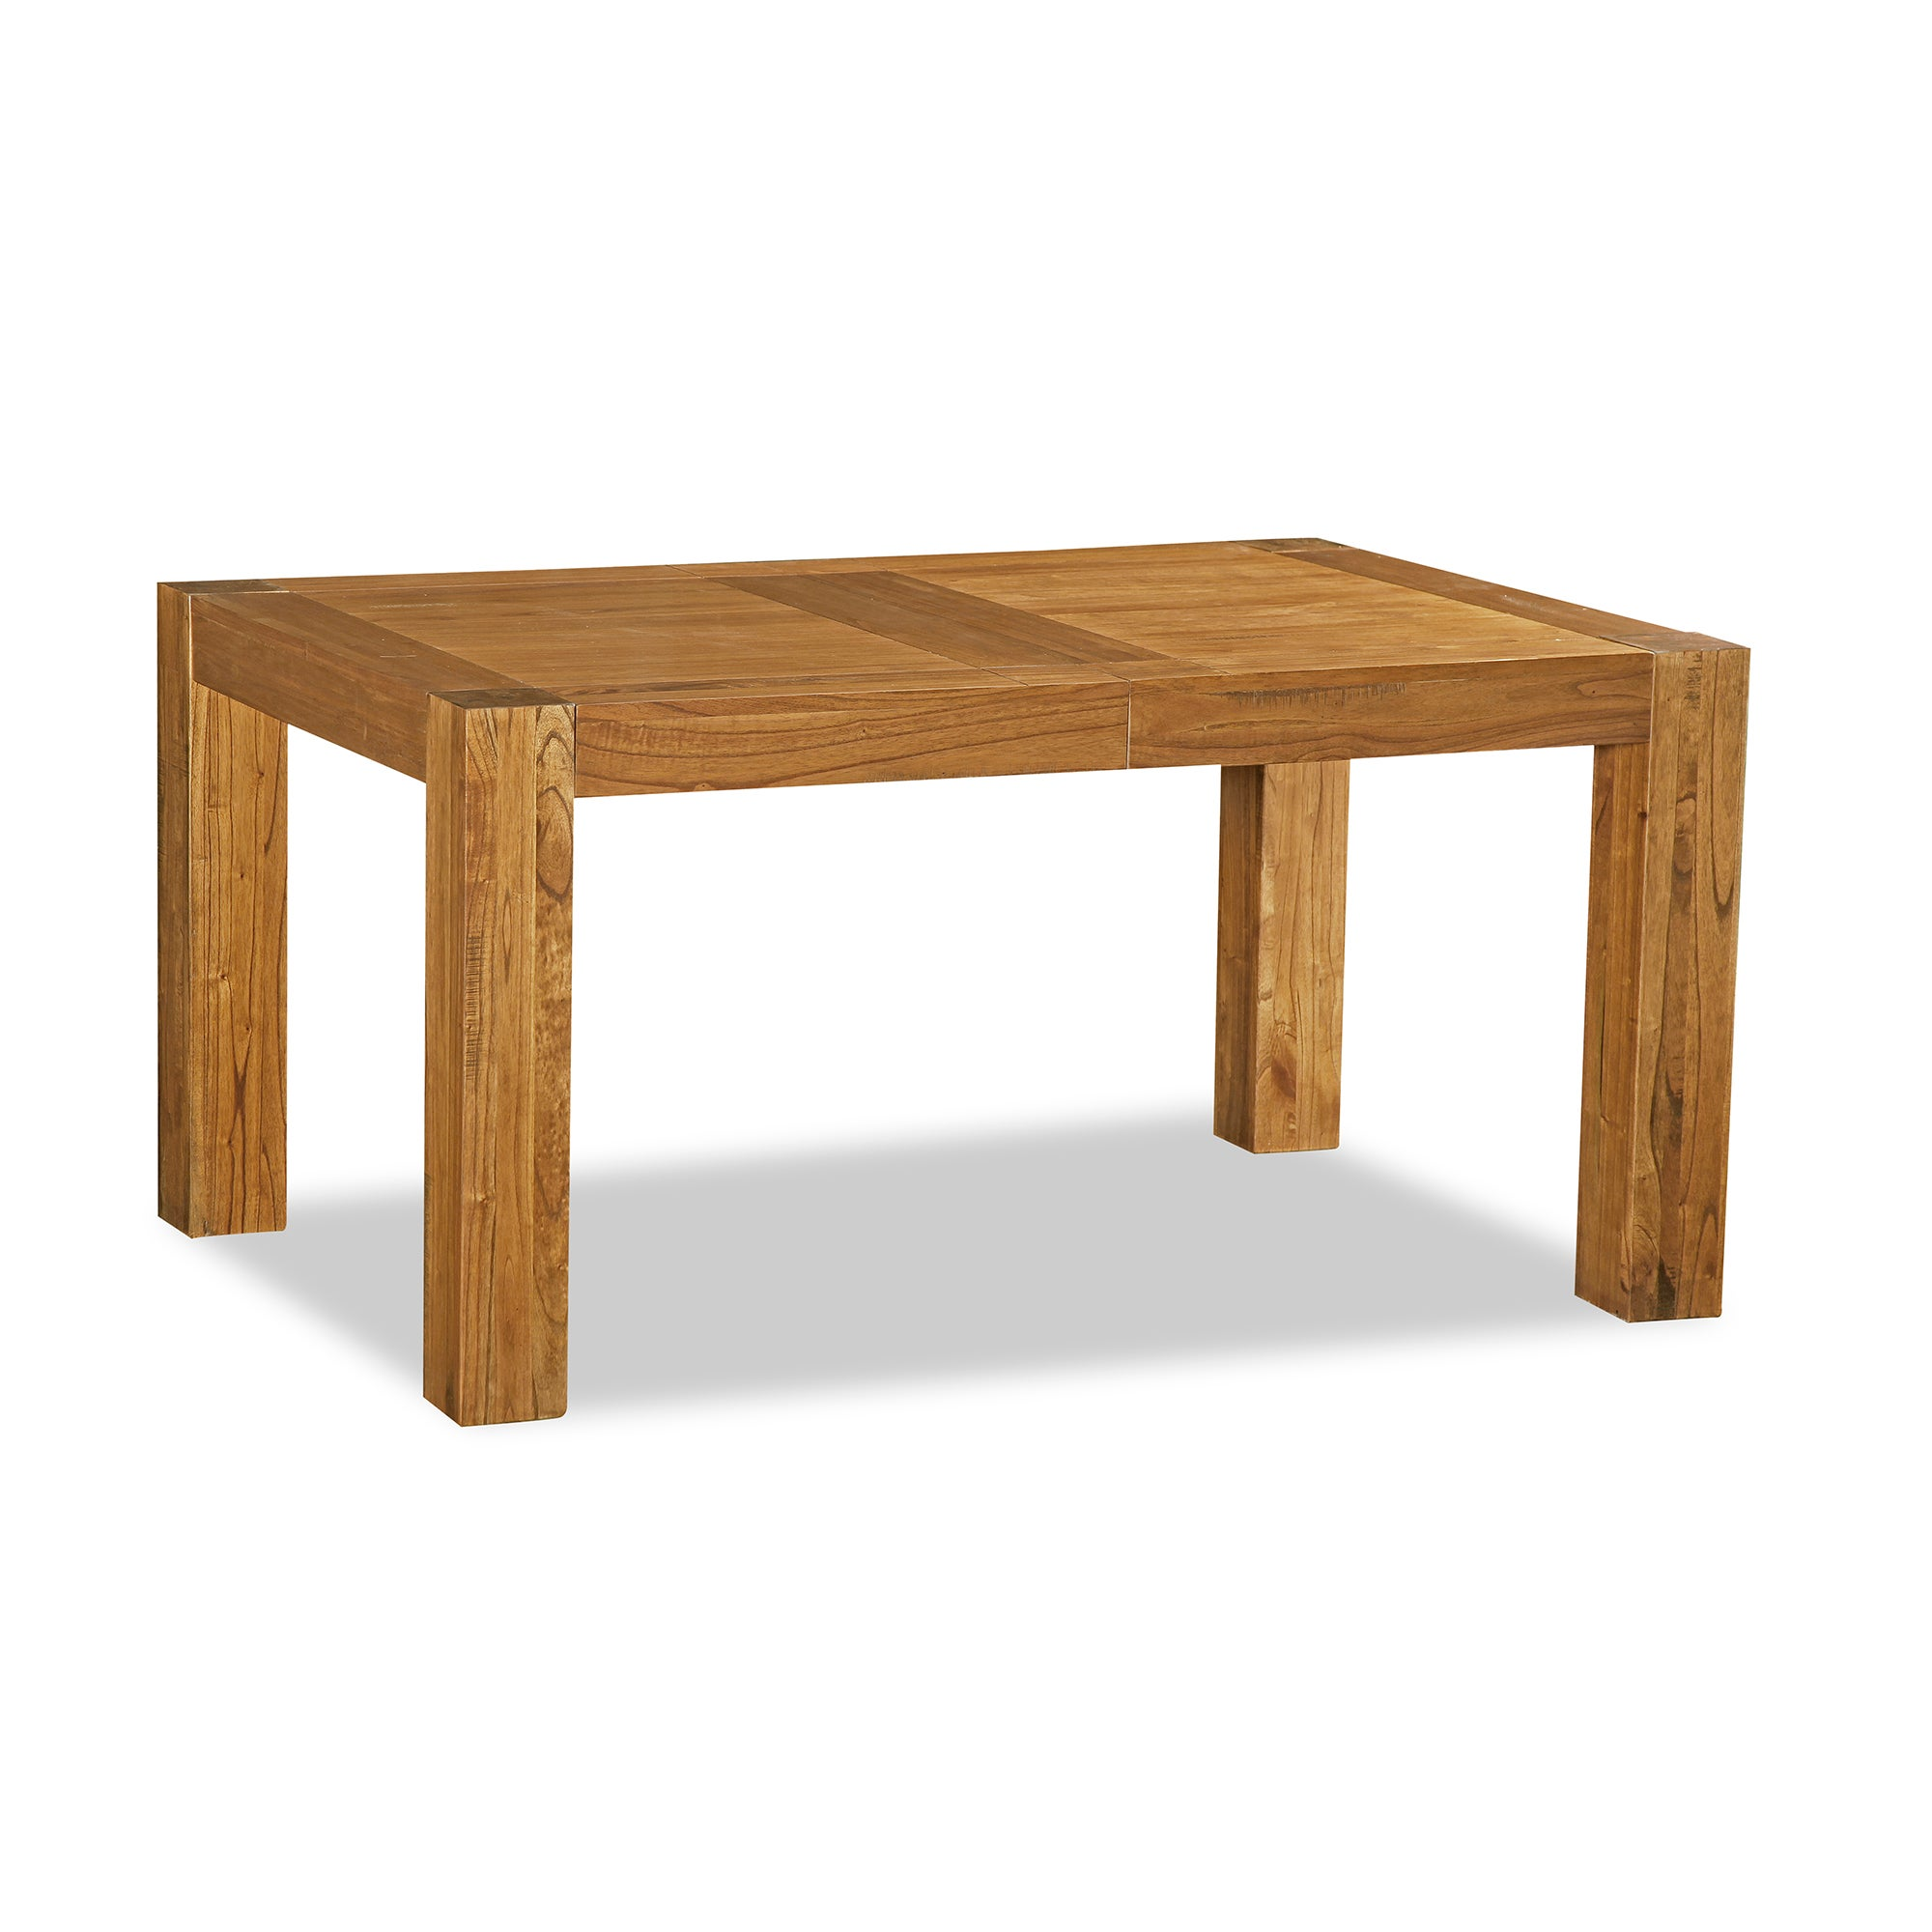 Buy cheap Small dining room table and chairs compare  : 1000041668main from super.priceinspector.co.uk size 550 x 550 jpeg 22kB